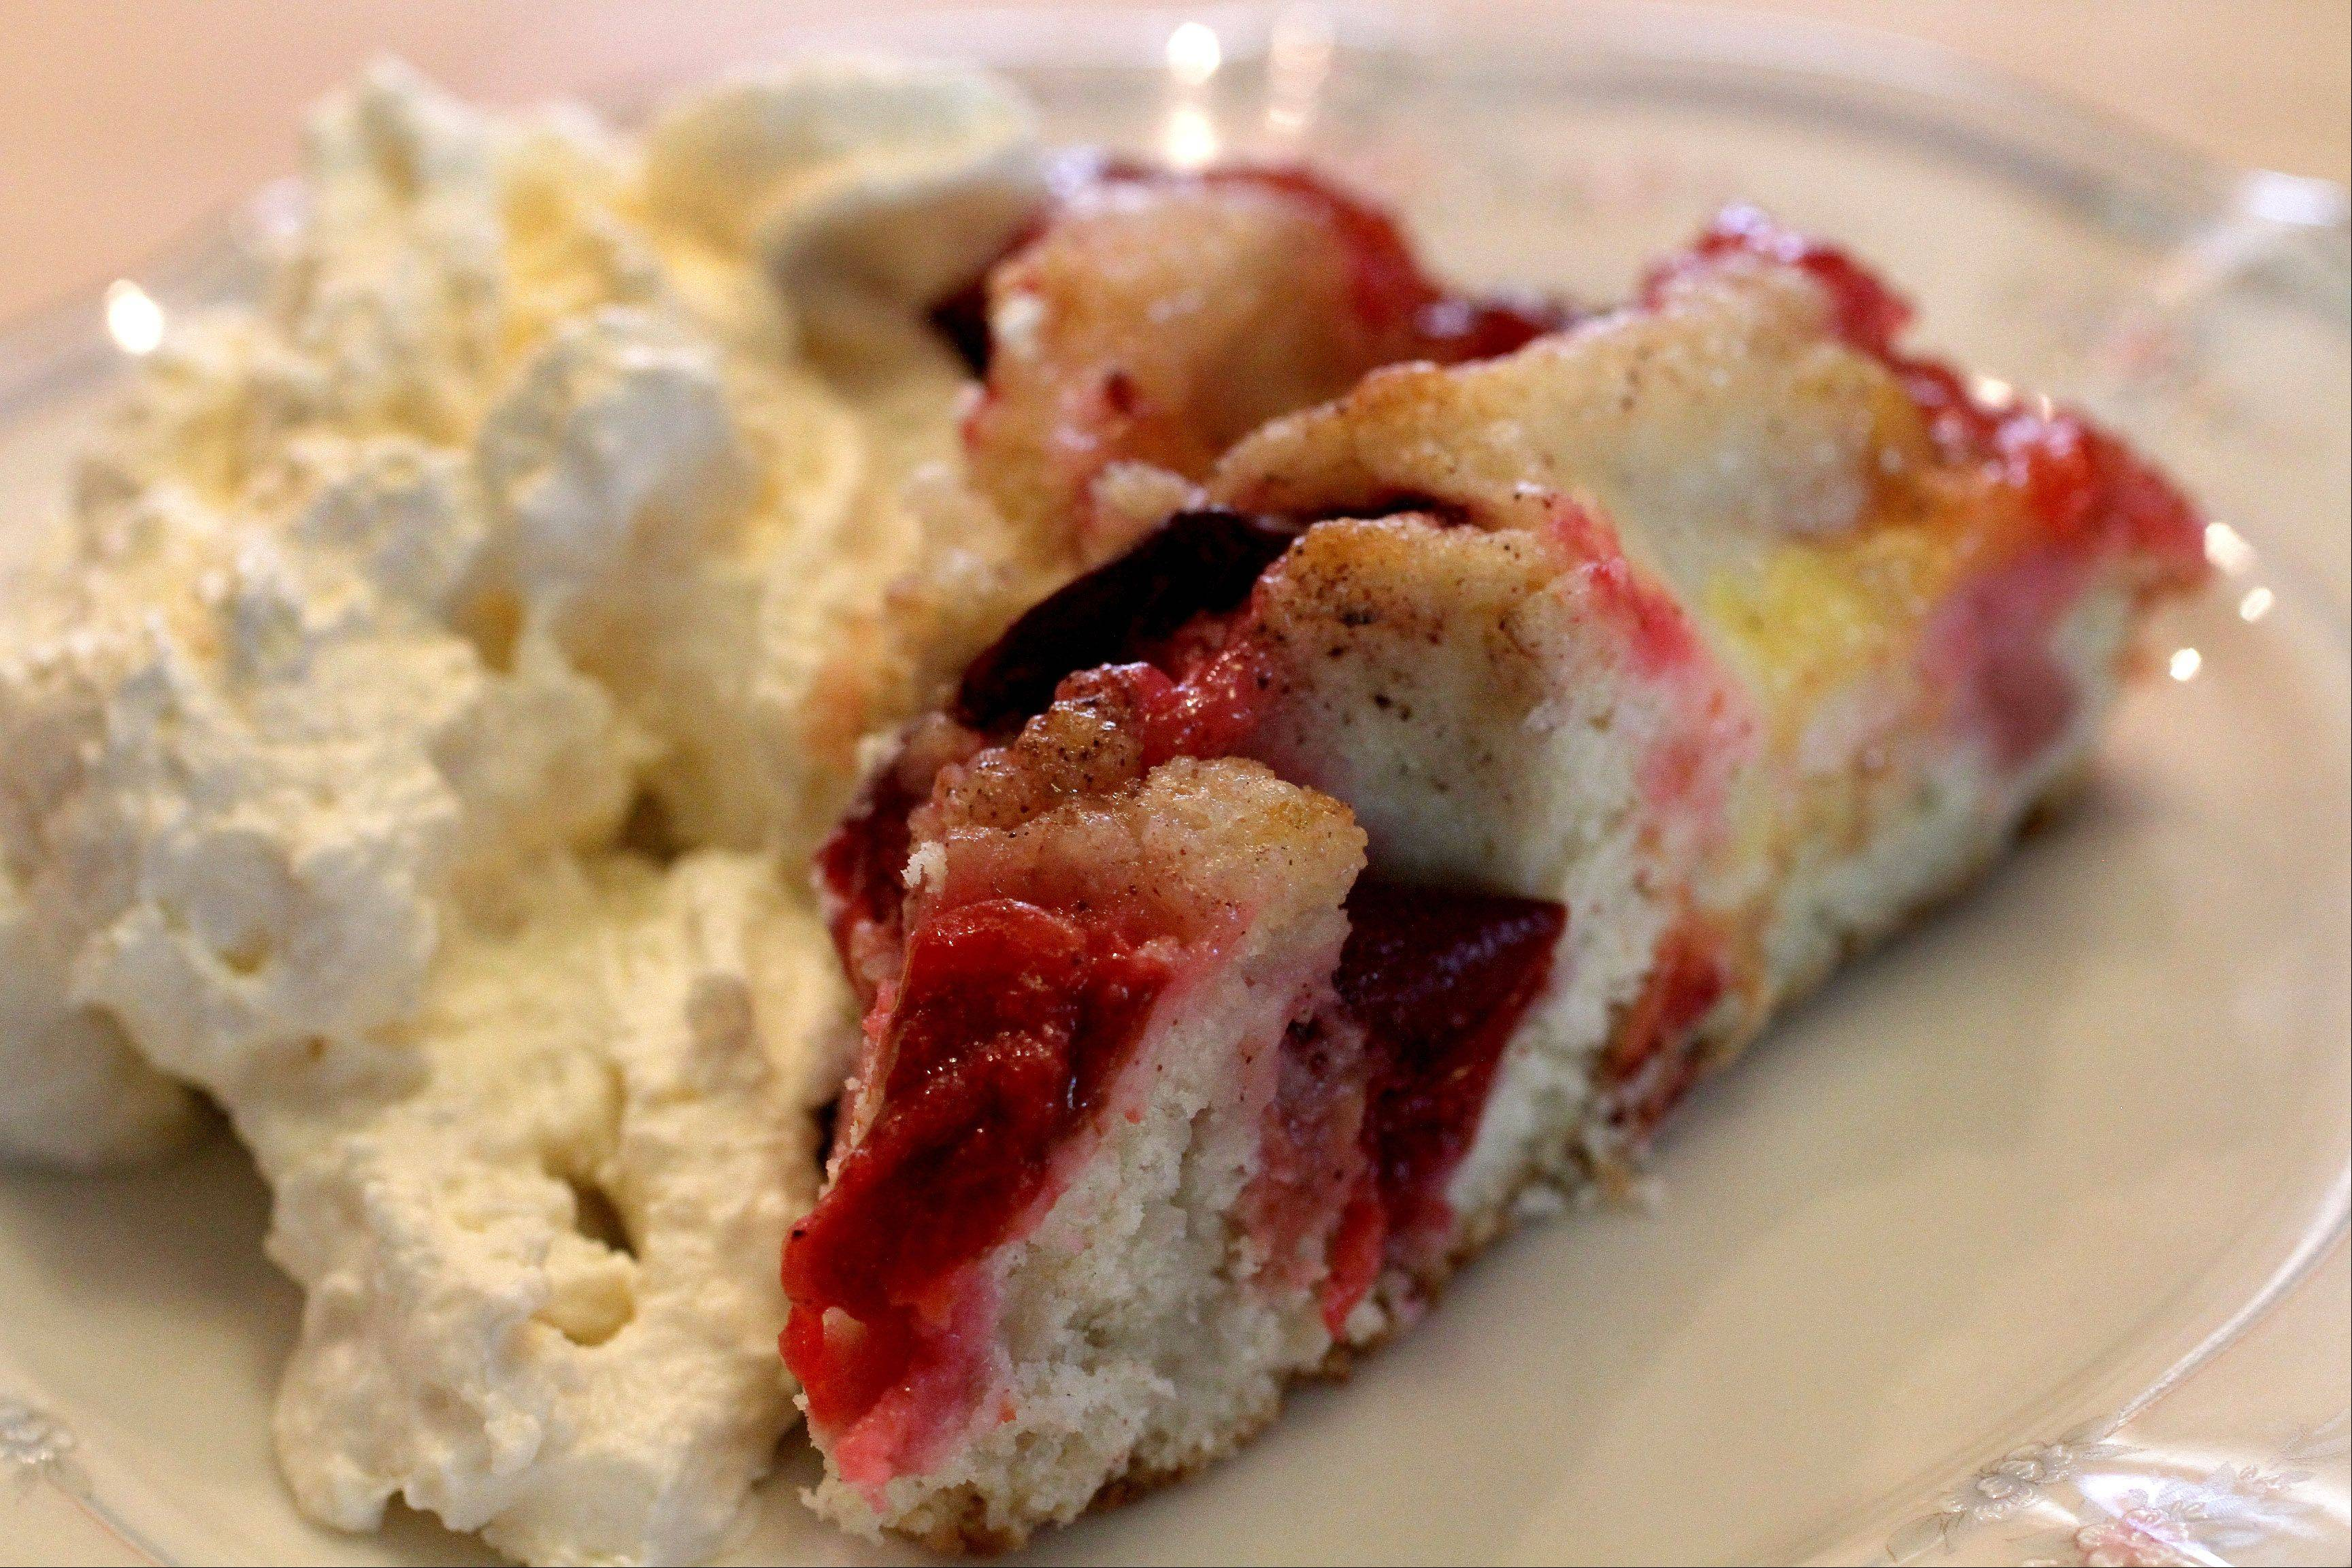 Susan Zybko learned to bake recipes like Plum and Nectarine Kuchen from her grandmothers. You can buy her treats July 11 and Aug. 3 and 17 at the Glen Ellyn Farmers Market.